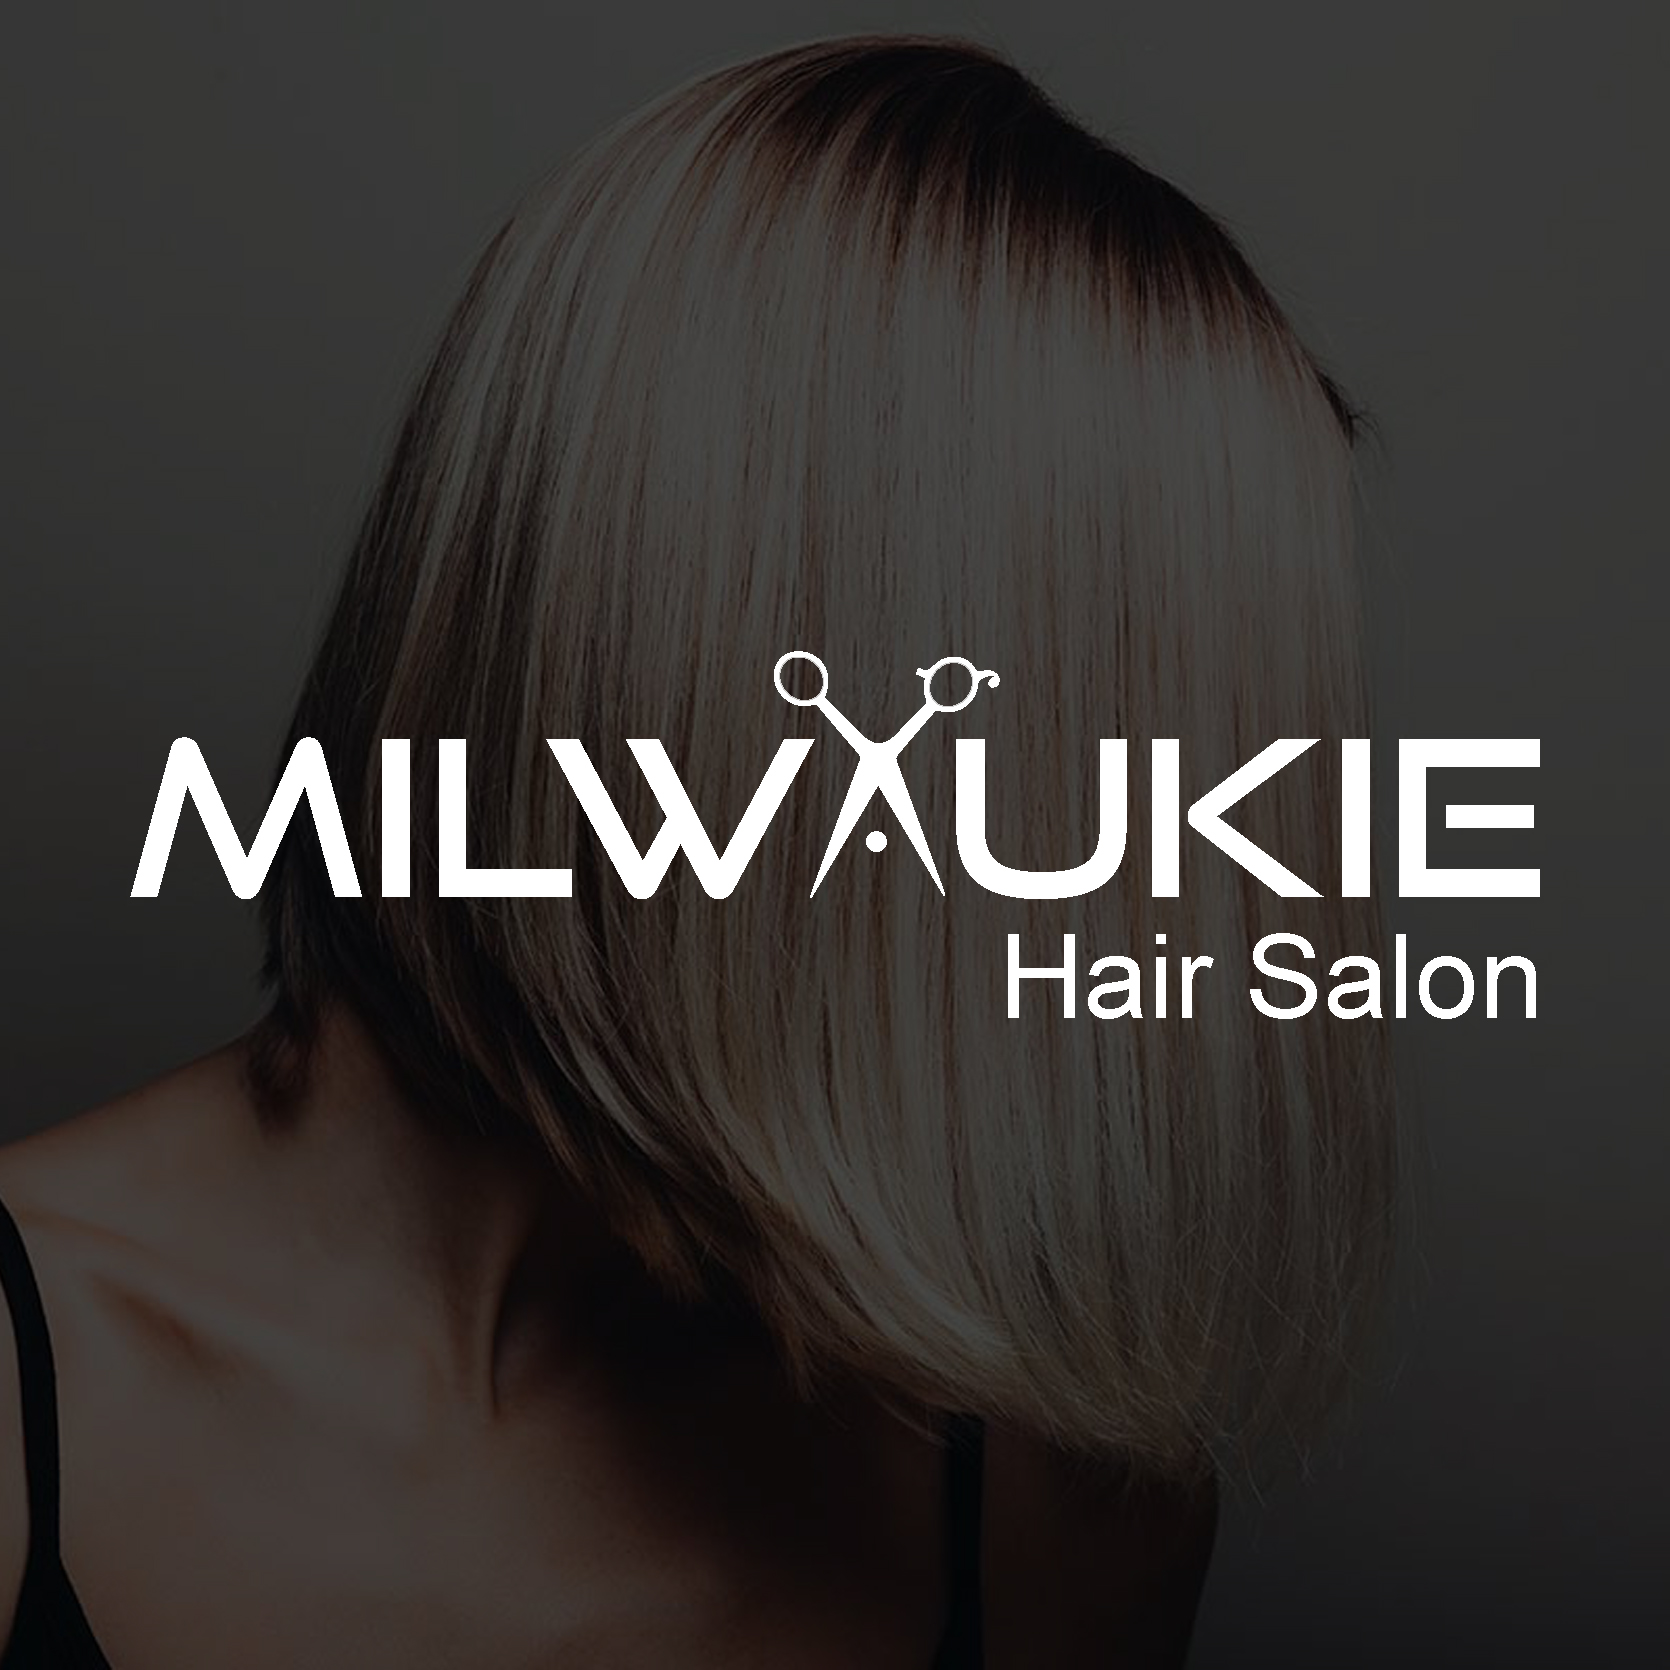 Milwaukie Hair Salon